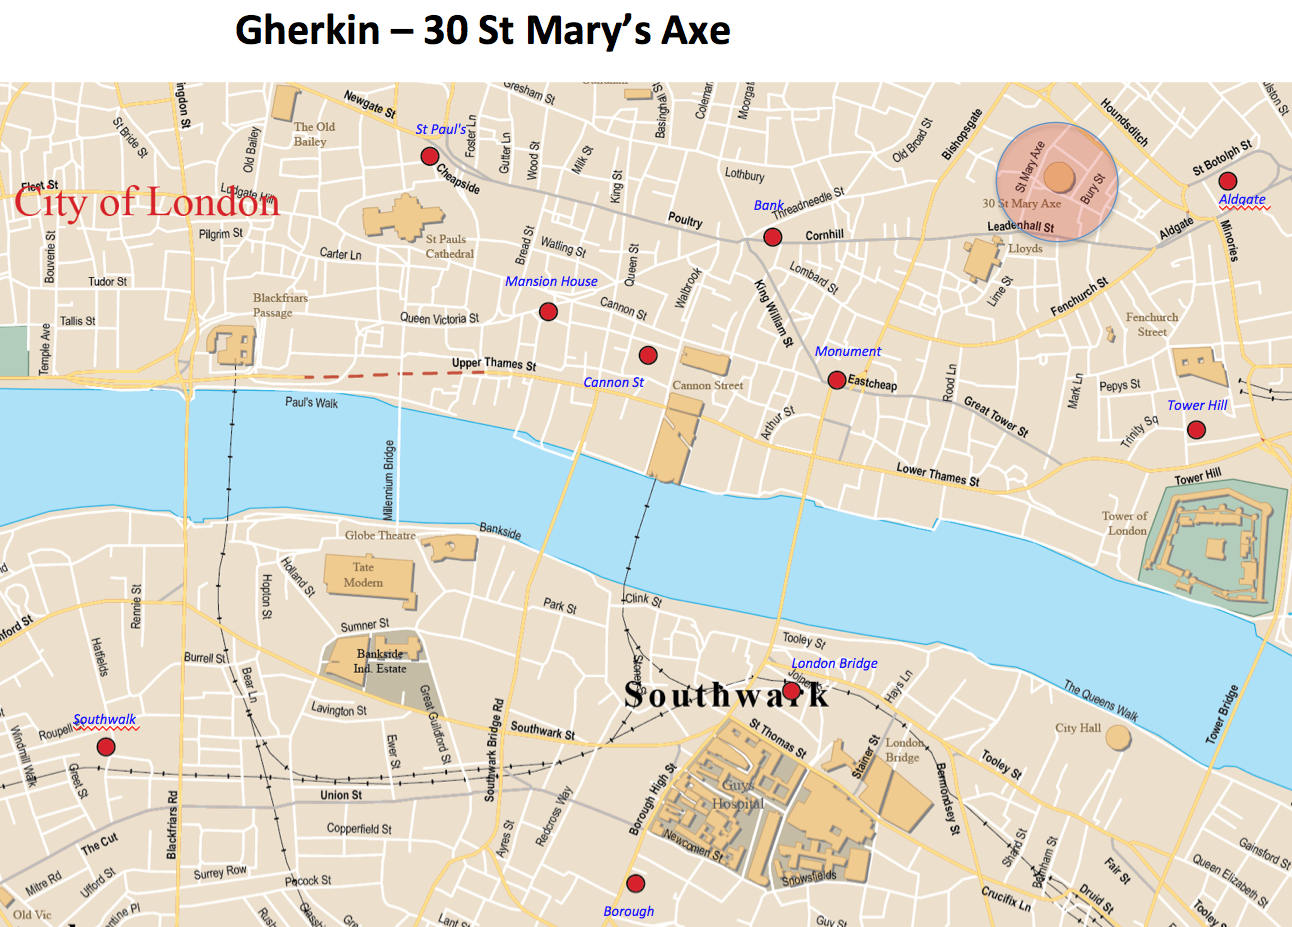 Gherkin 30 St Mary Axe map London Photo Areas and Routes